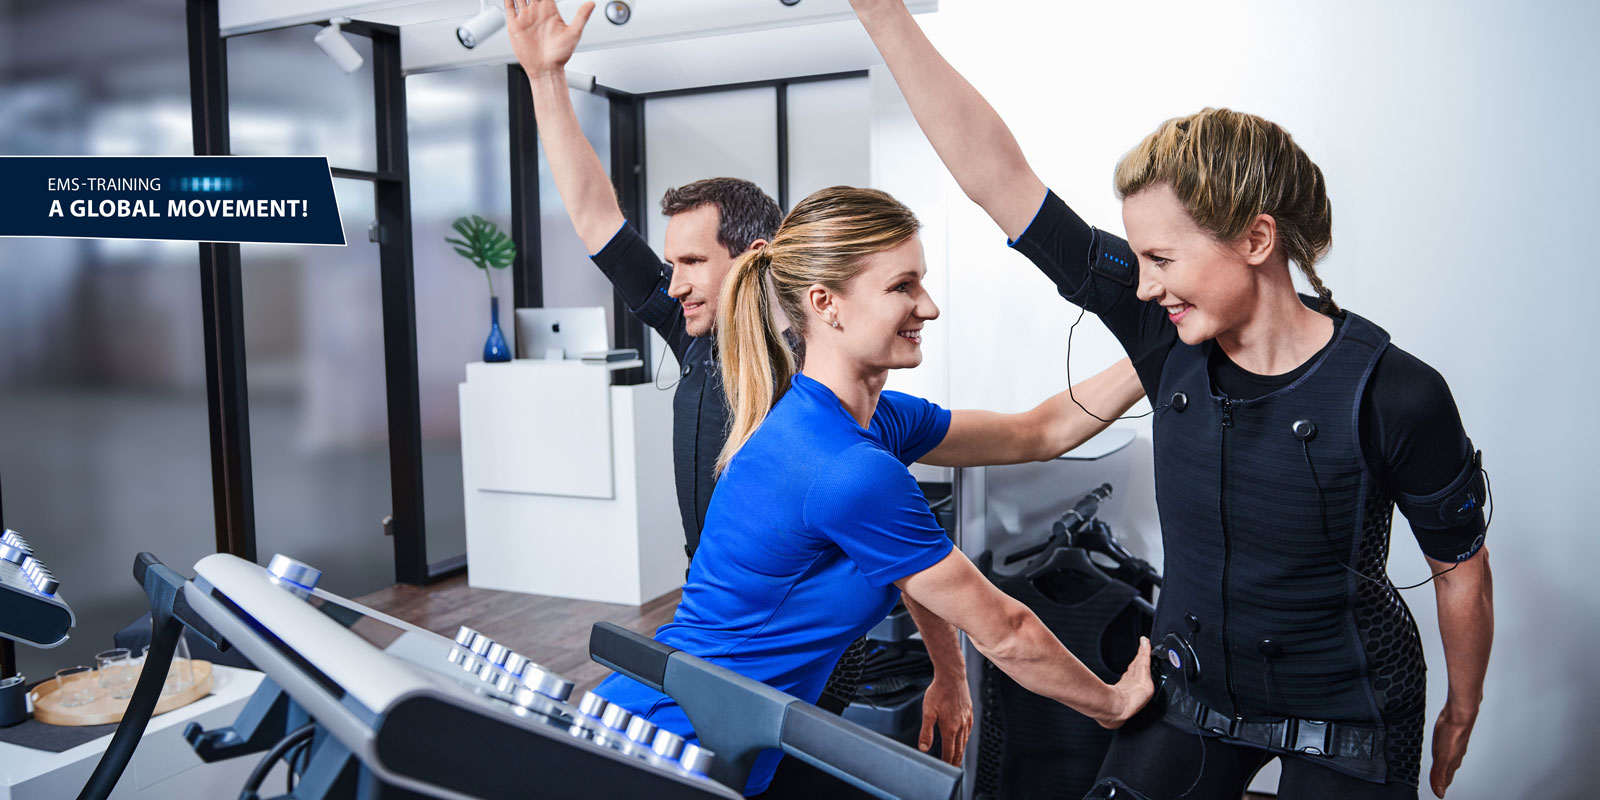 personal trainer exercises two people on miha bodytec 2 machines